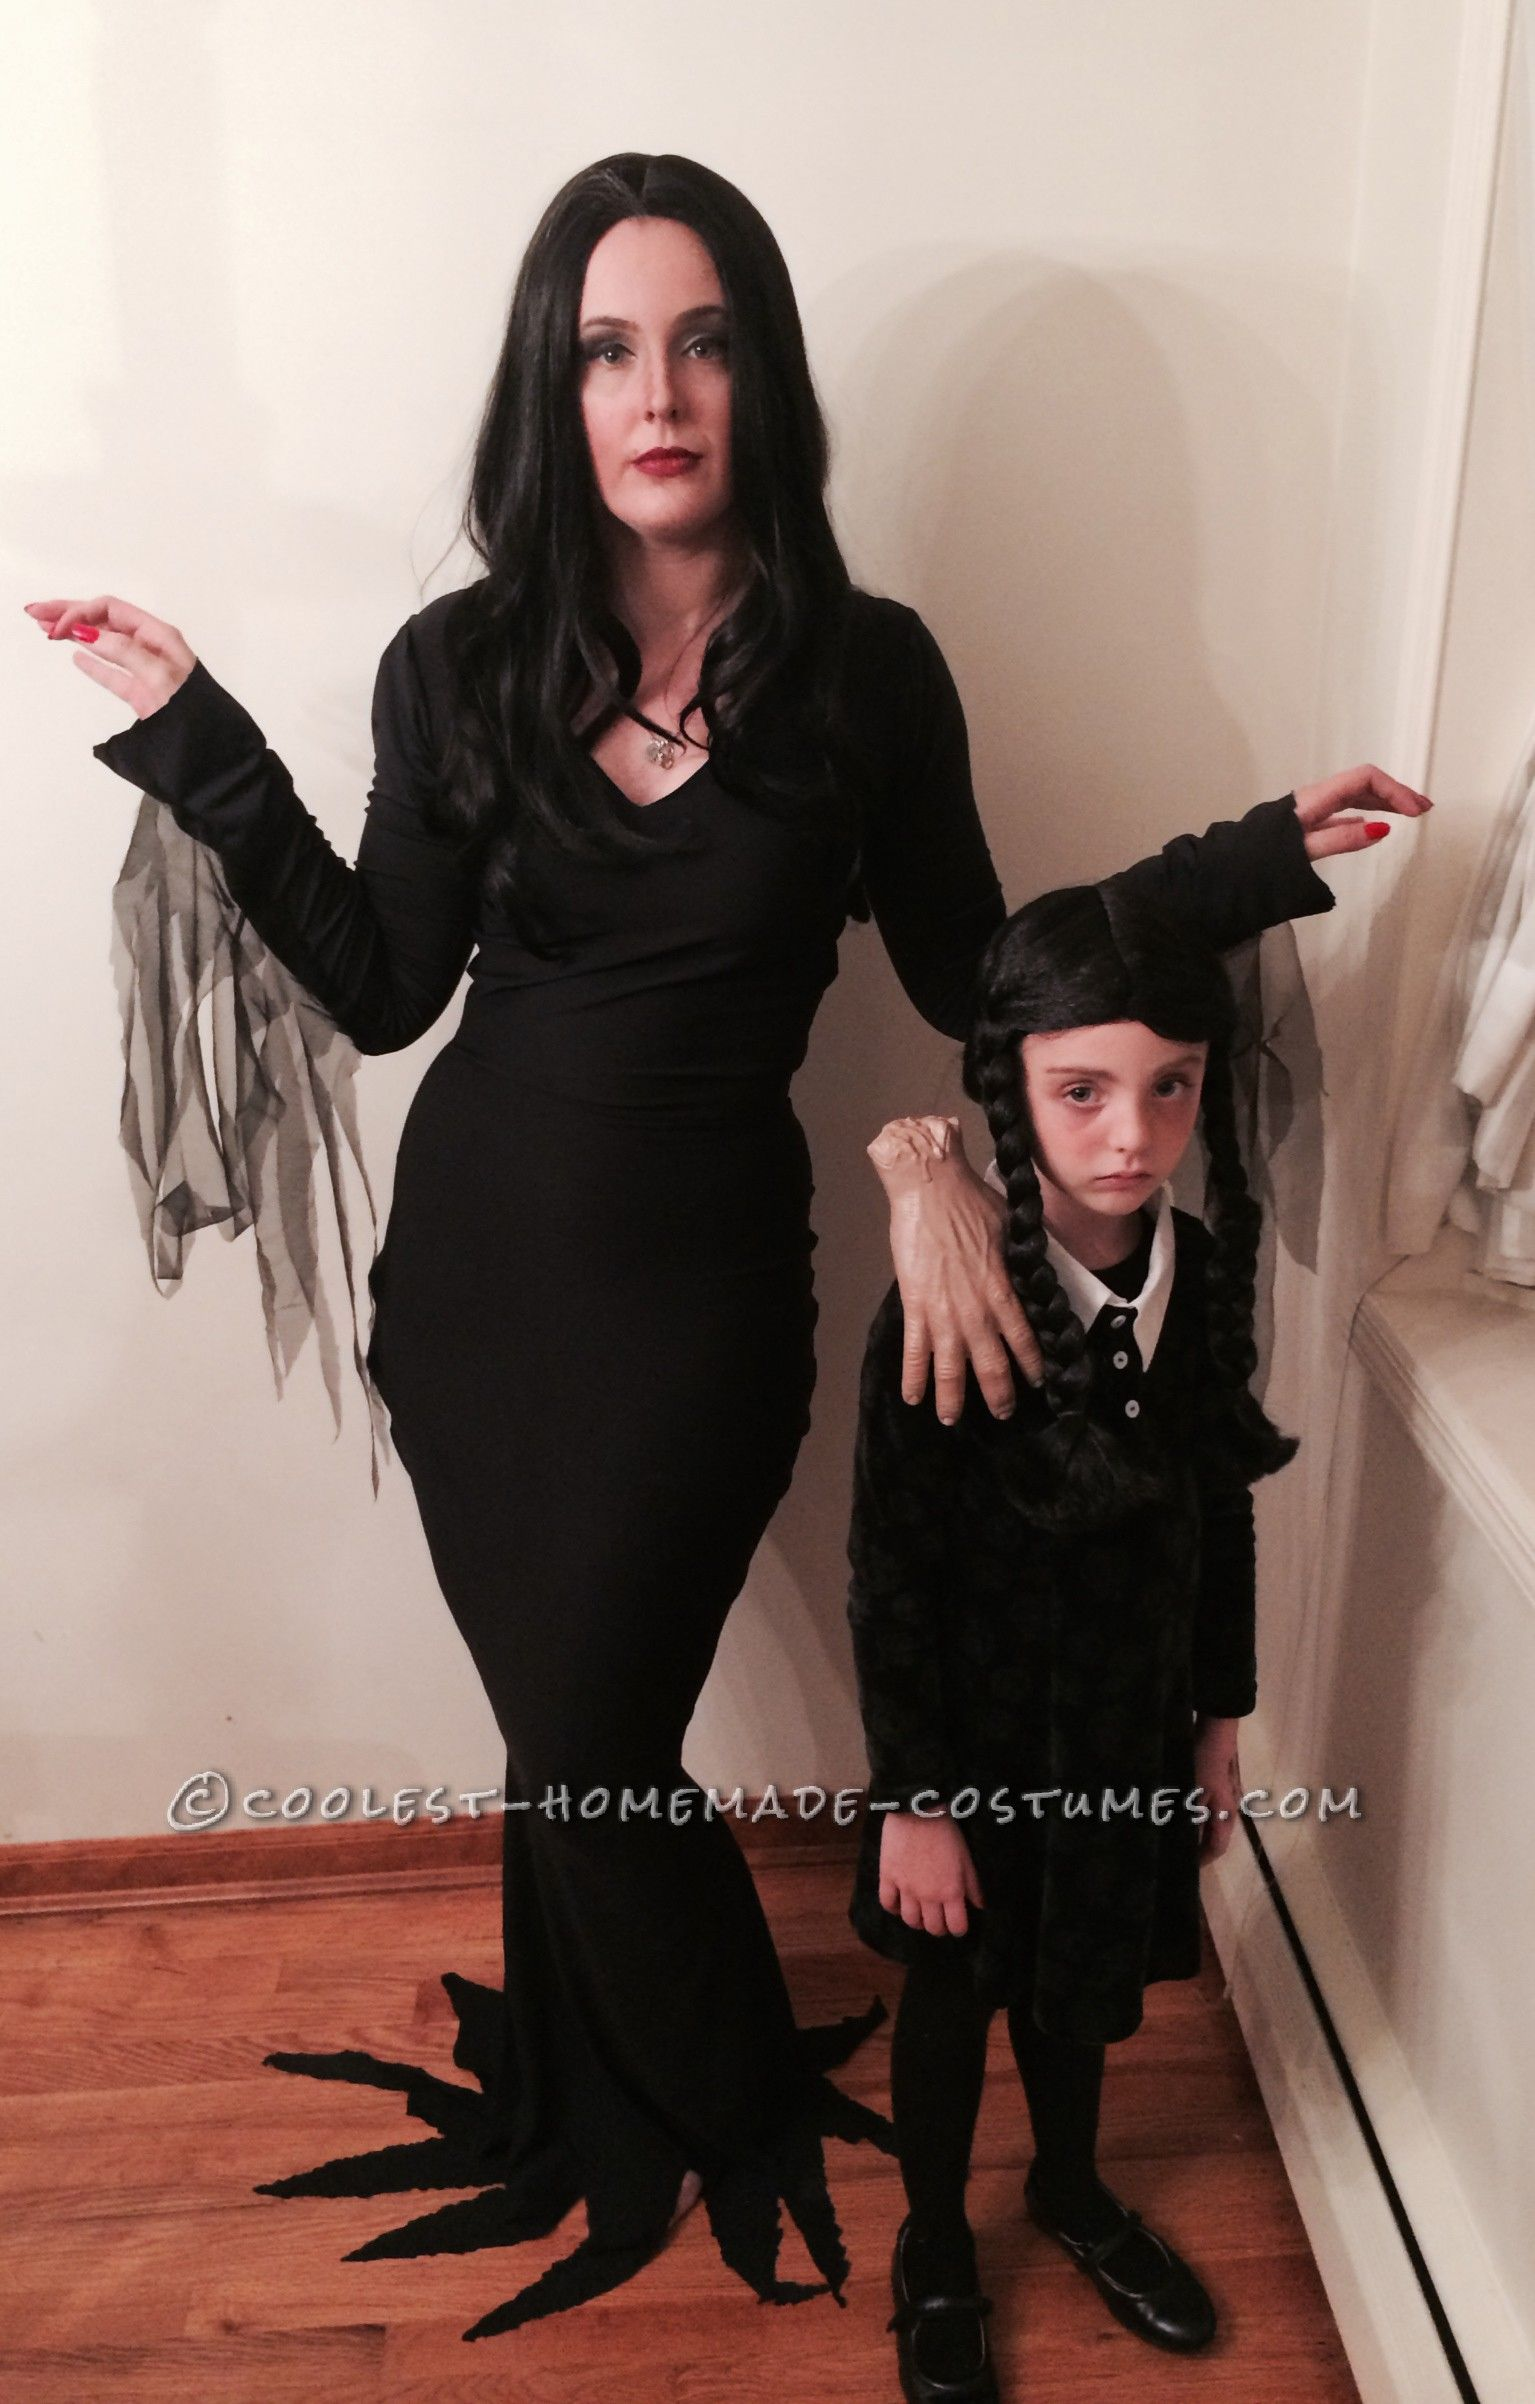 cool homemade mom and daughter couple costume morticia and wednesday addams with thing. Black Bedroom Furniture Sets. Home Design Ideas